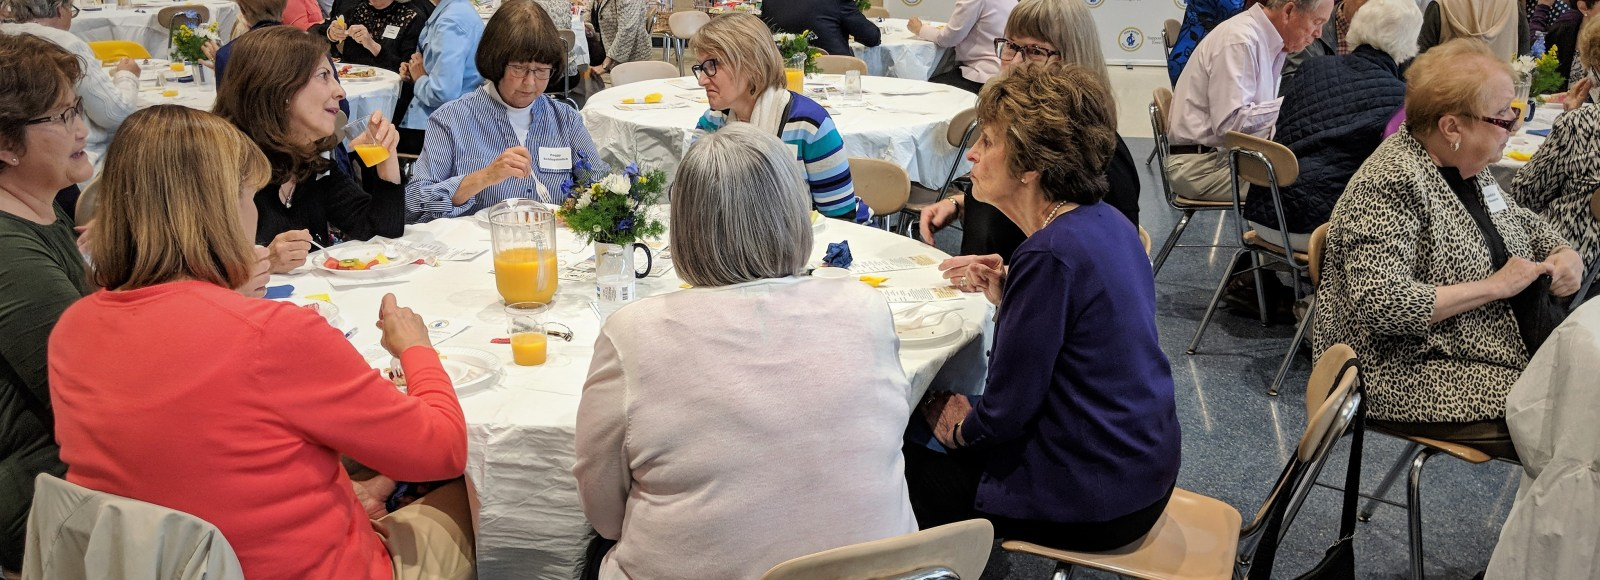 Familiar faces gather for 2019 Penn Manor Retiree Breakfast